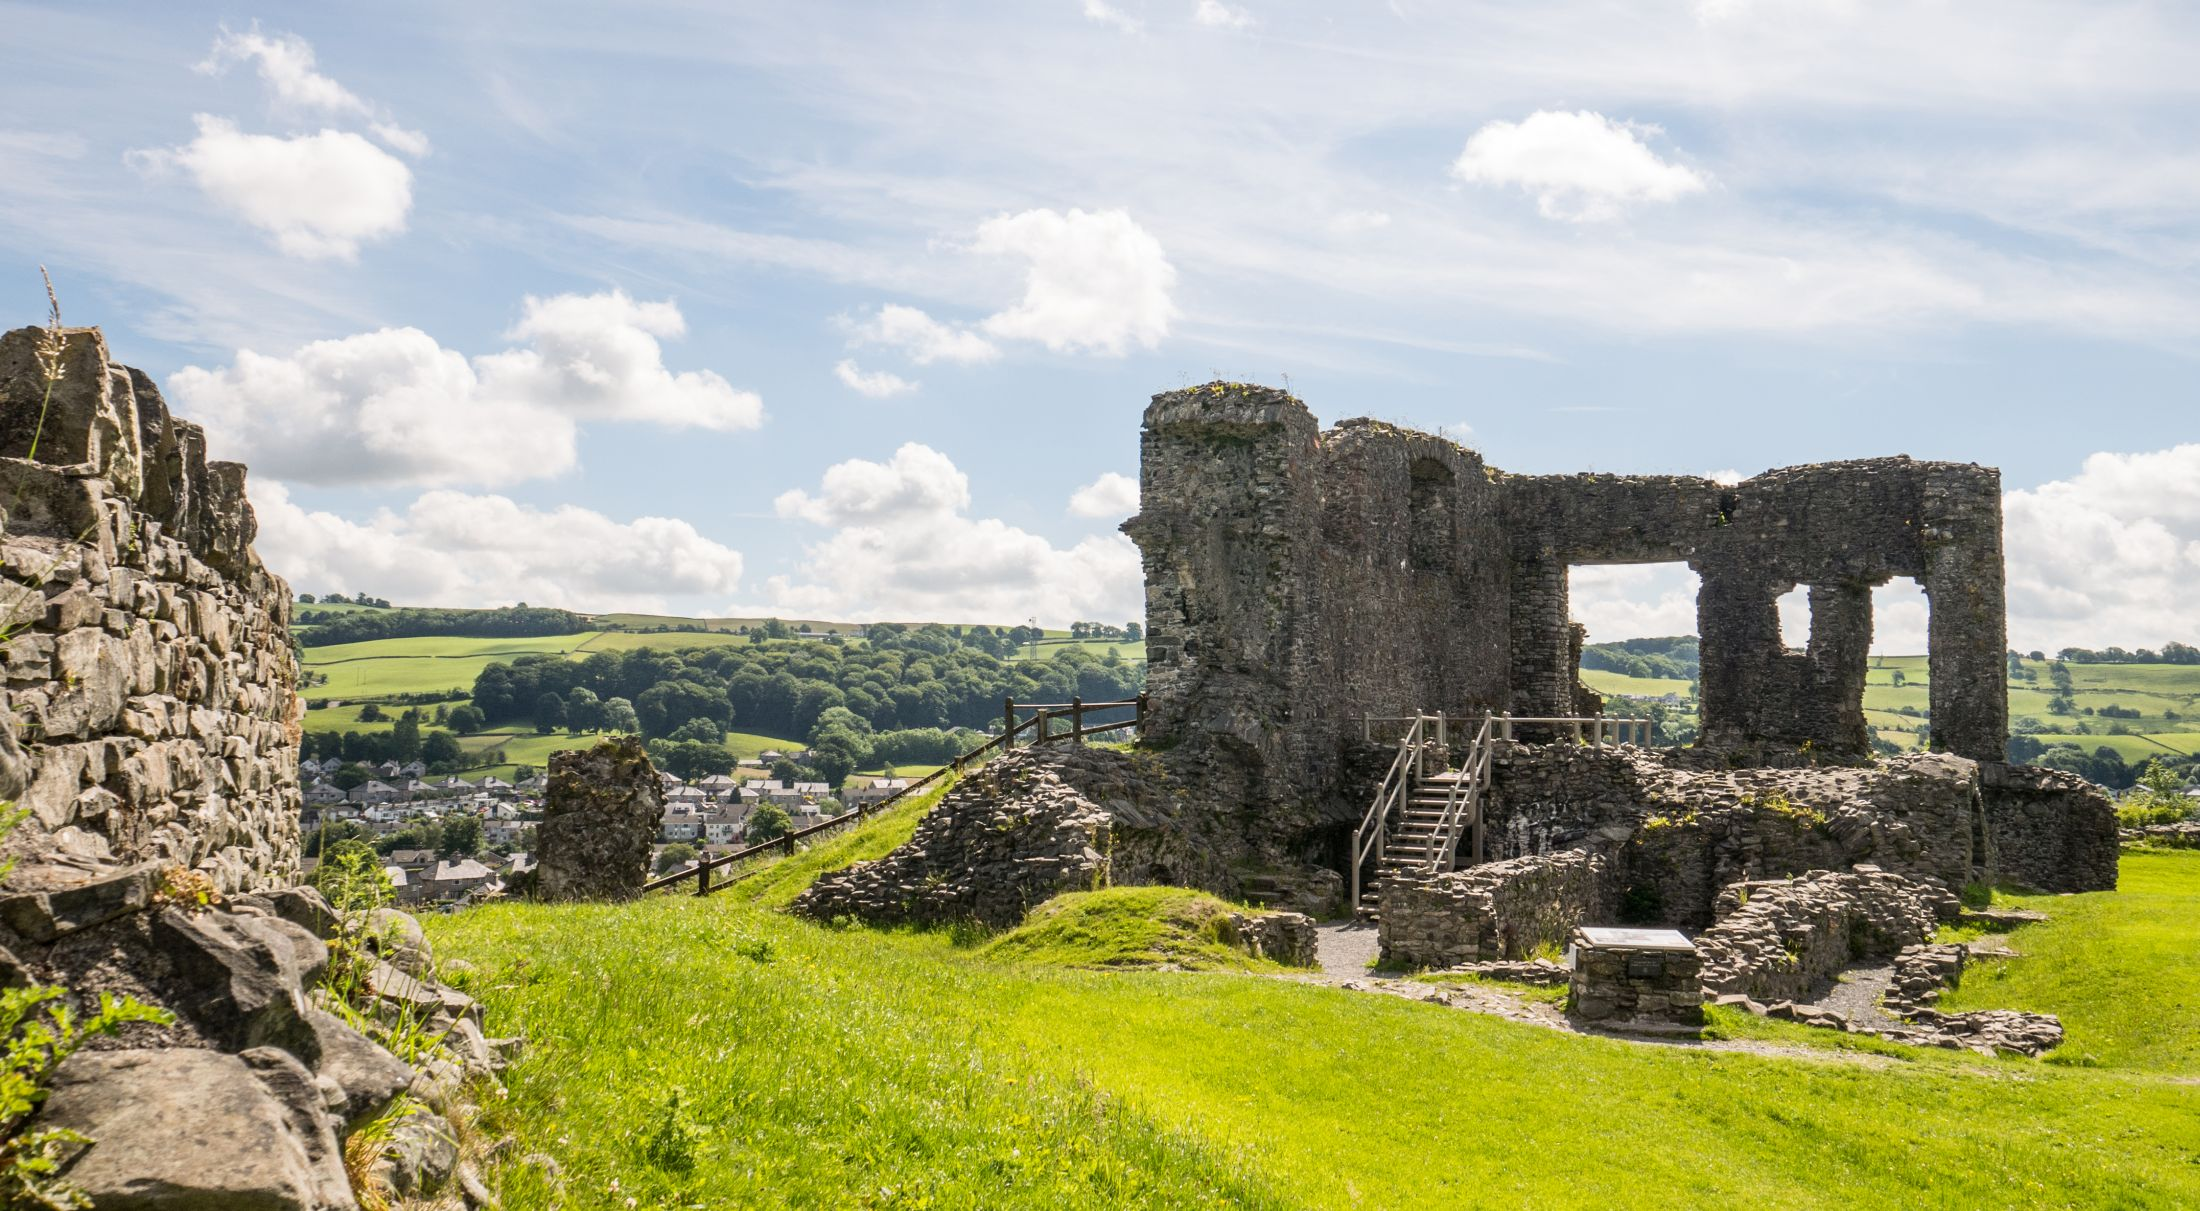 What to do in Kendal - visit Kendal Castle